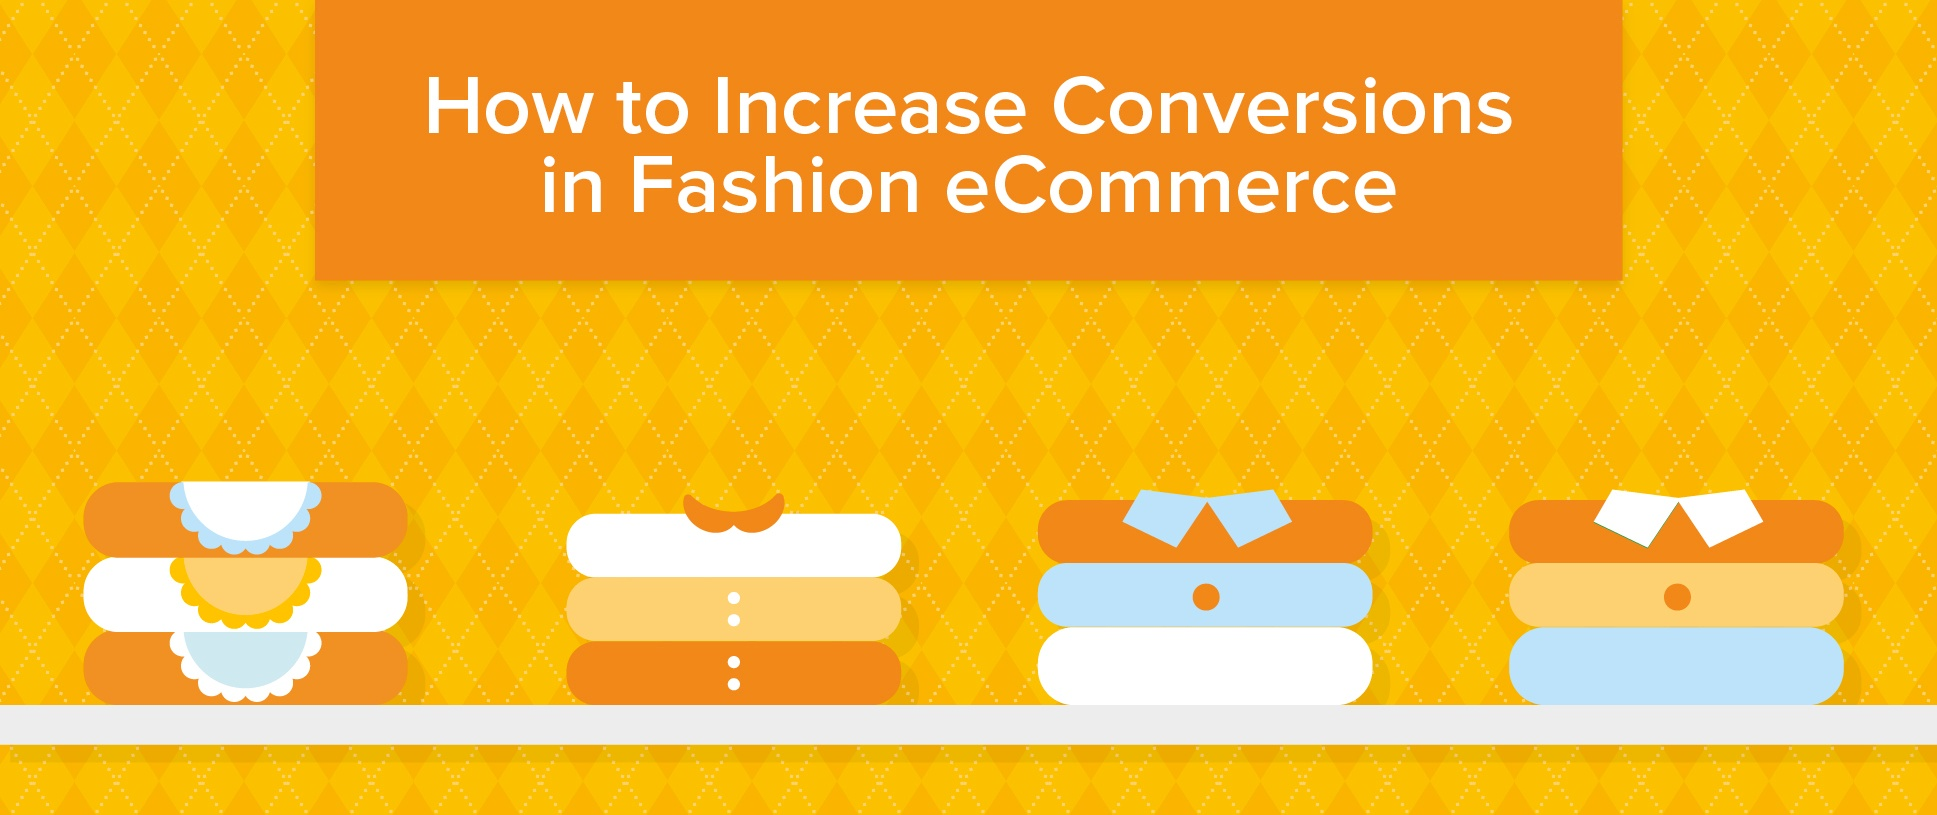 How to increase conversions in fashion eCommerce